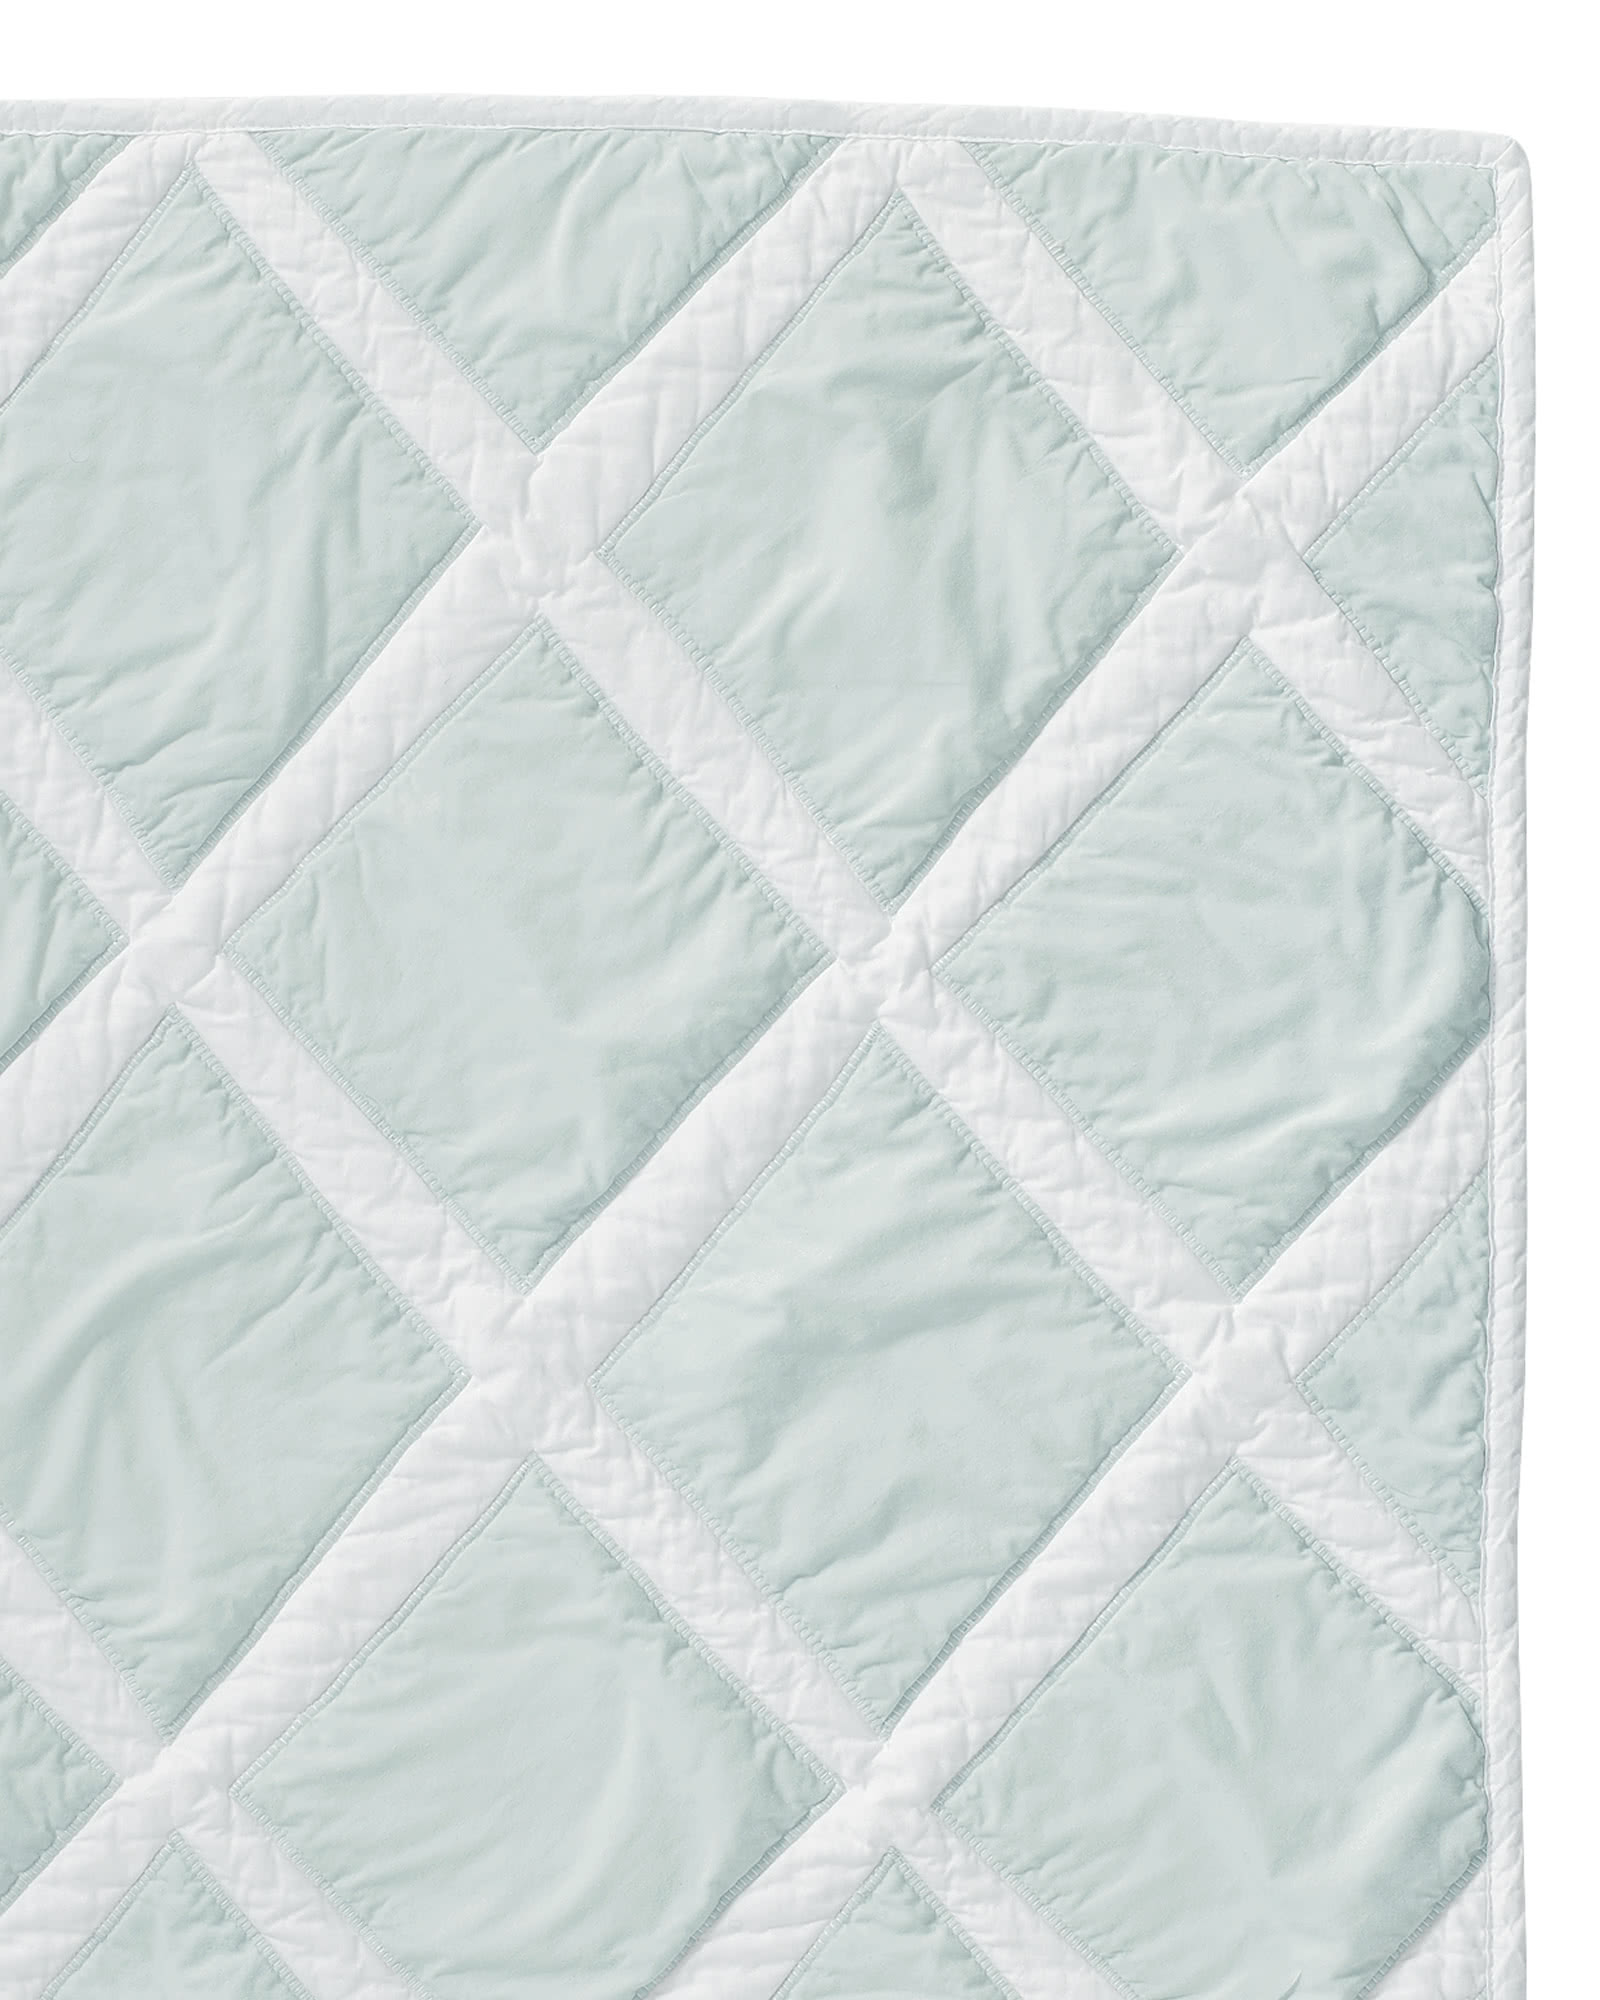 Serena And Lilly Diamond Quilt Sham Serena Lily